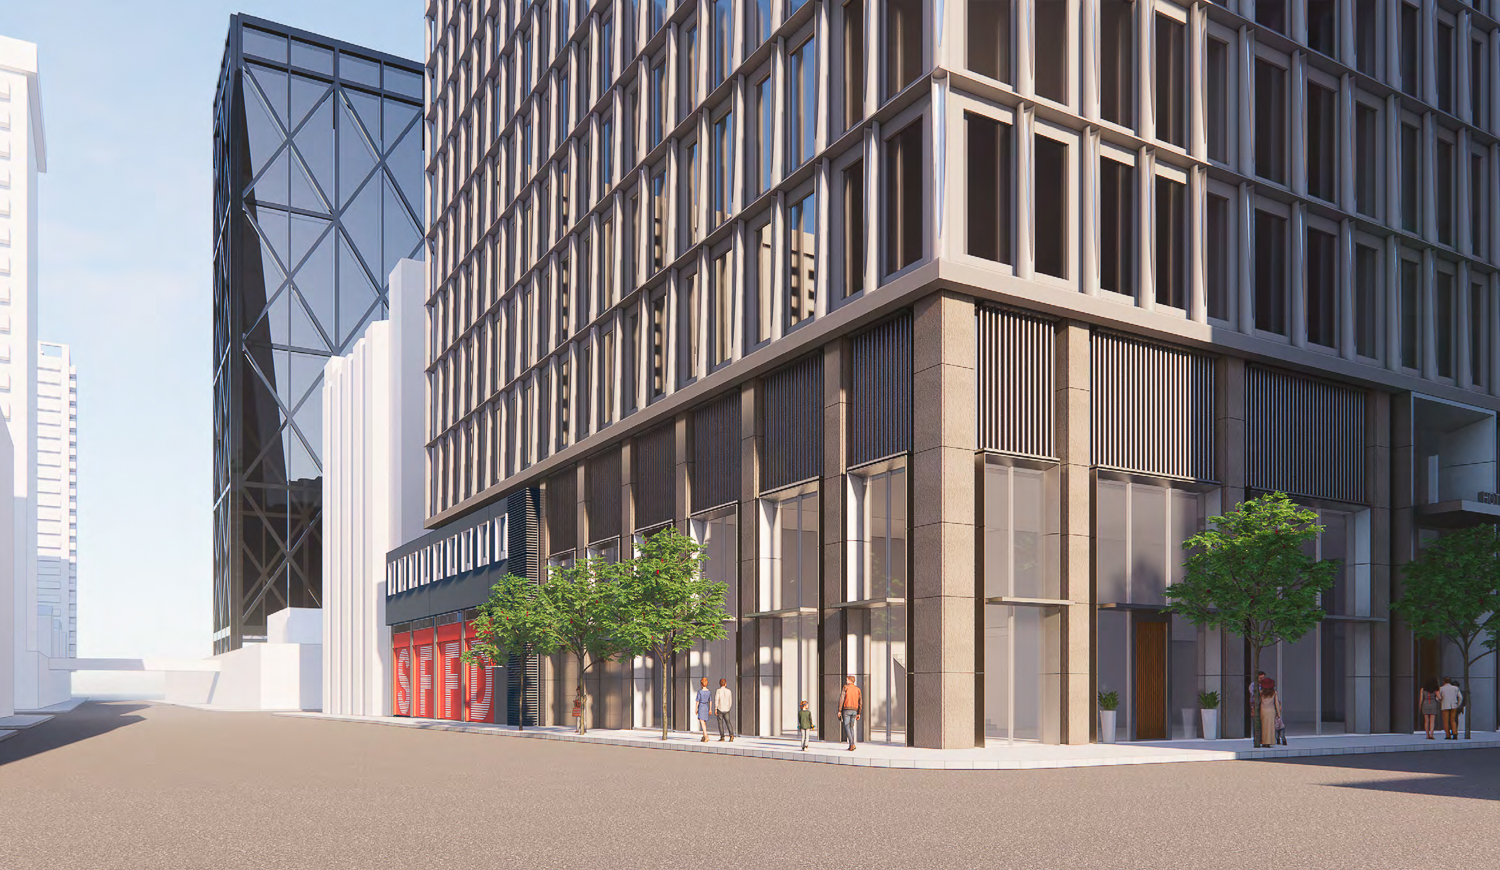 530 Sansome Street hotel project variant, rendering by SOM